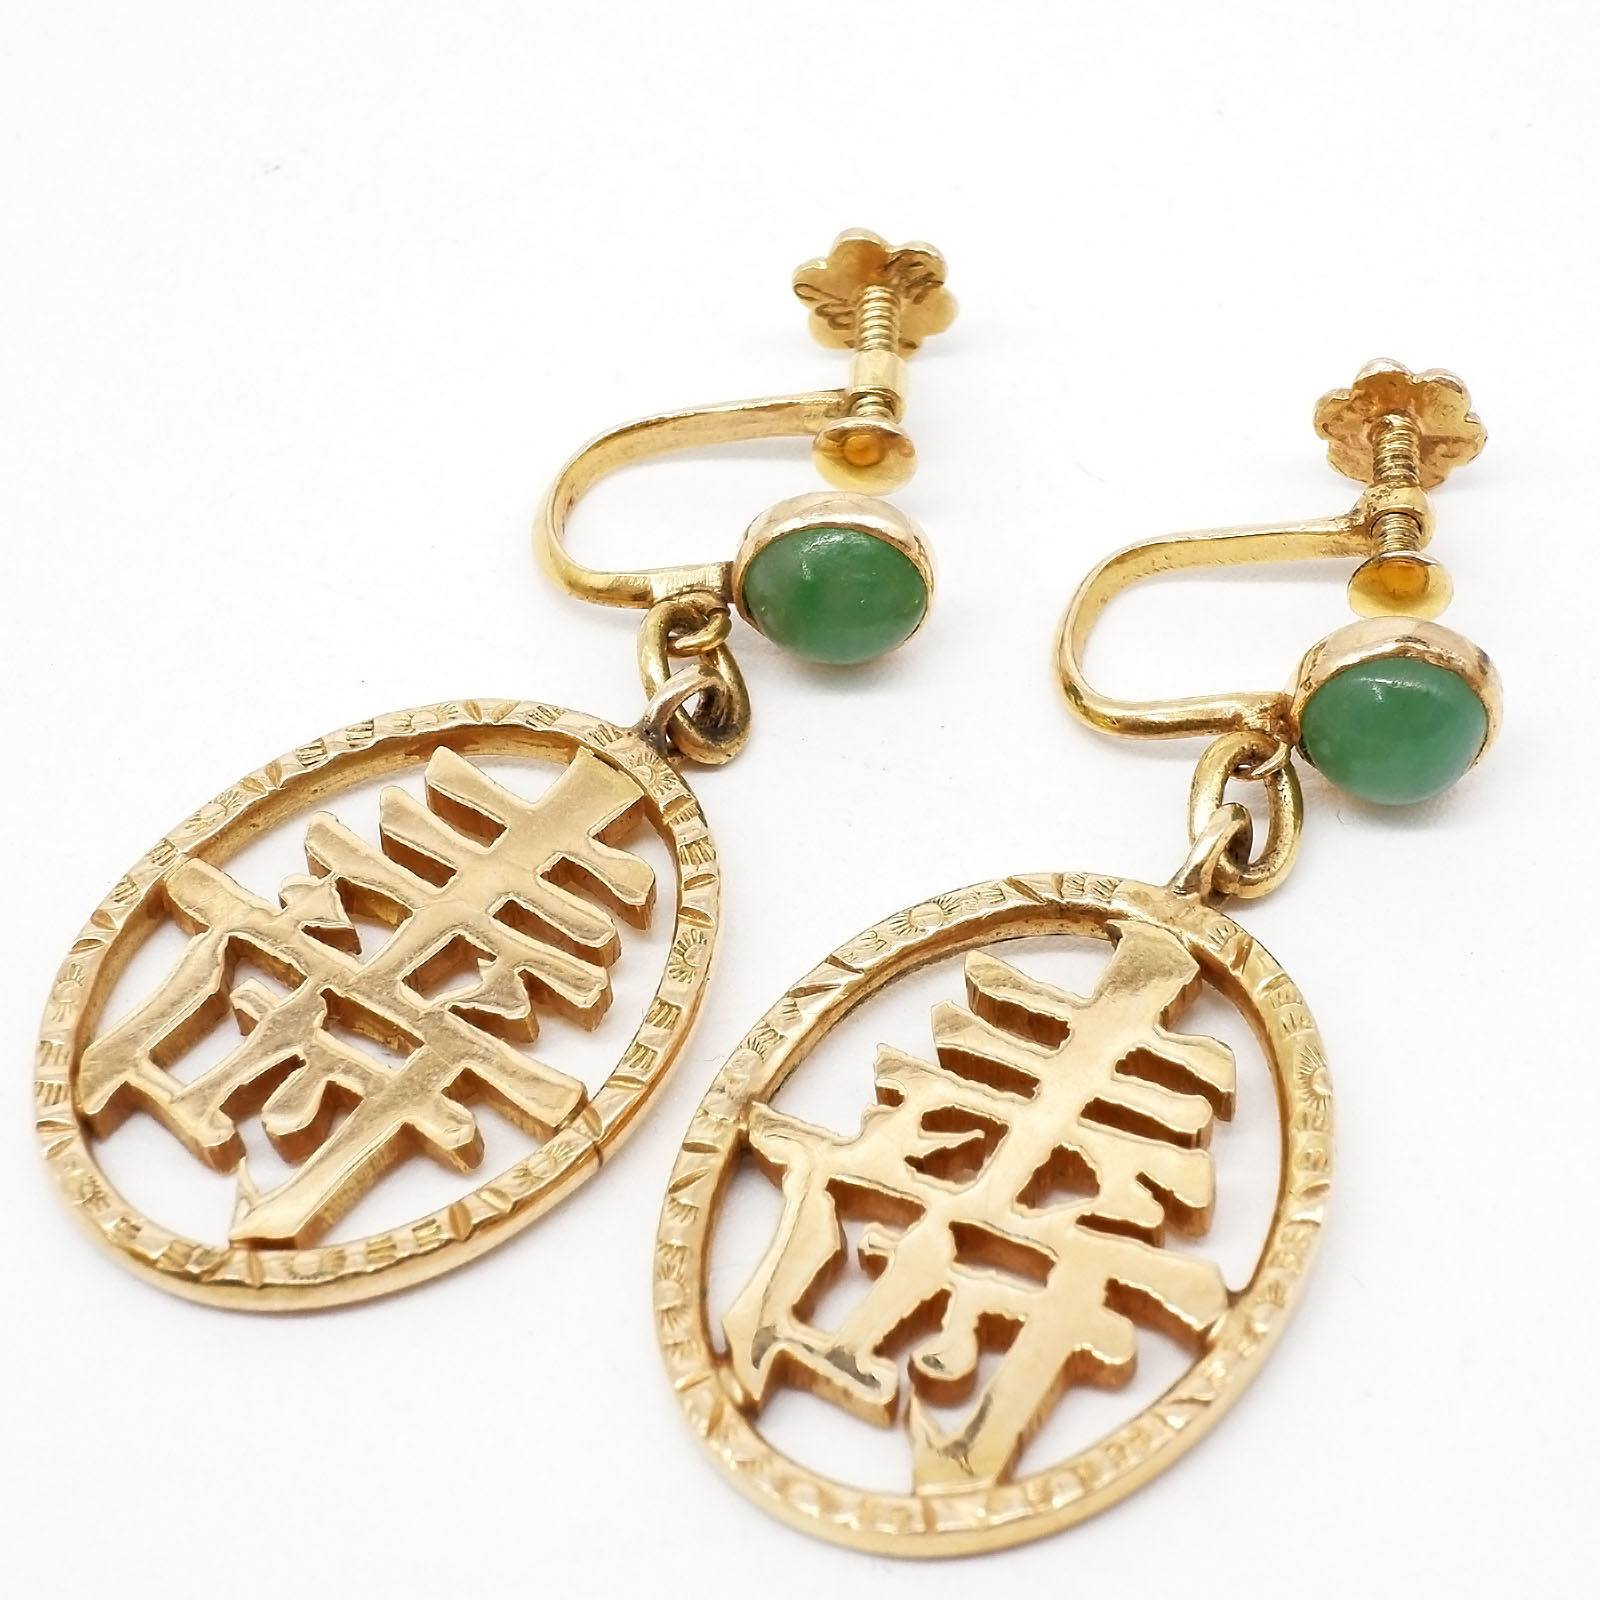 'Chinese 14ct Yellow Gold Screw and Apple Green Jadeite Earrings with Oval Pierced Chinese Character'